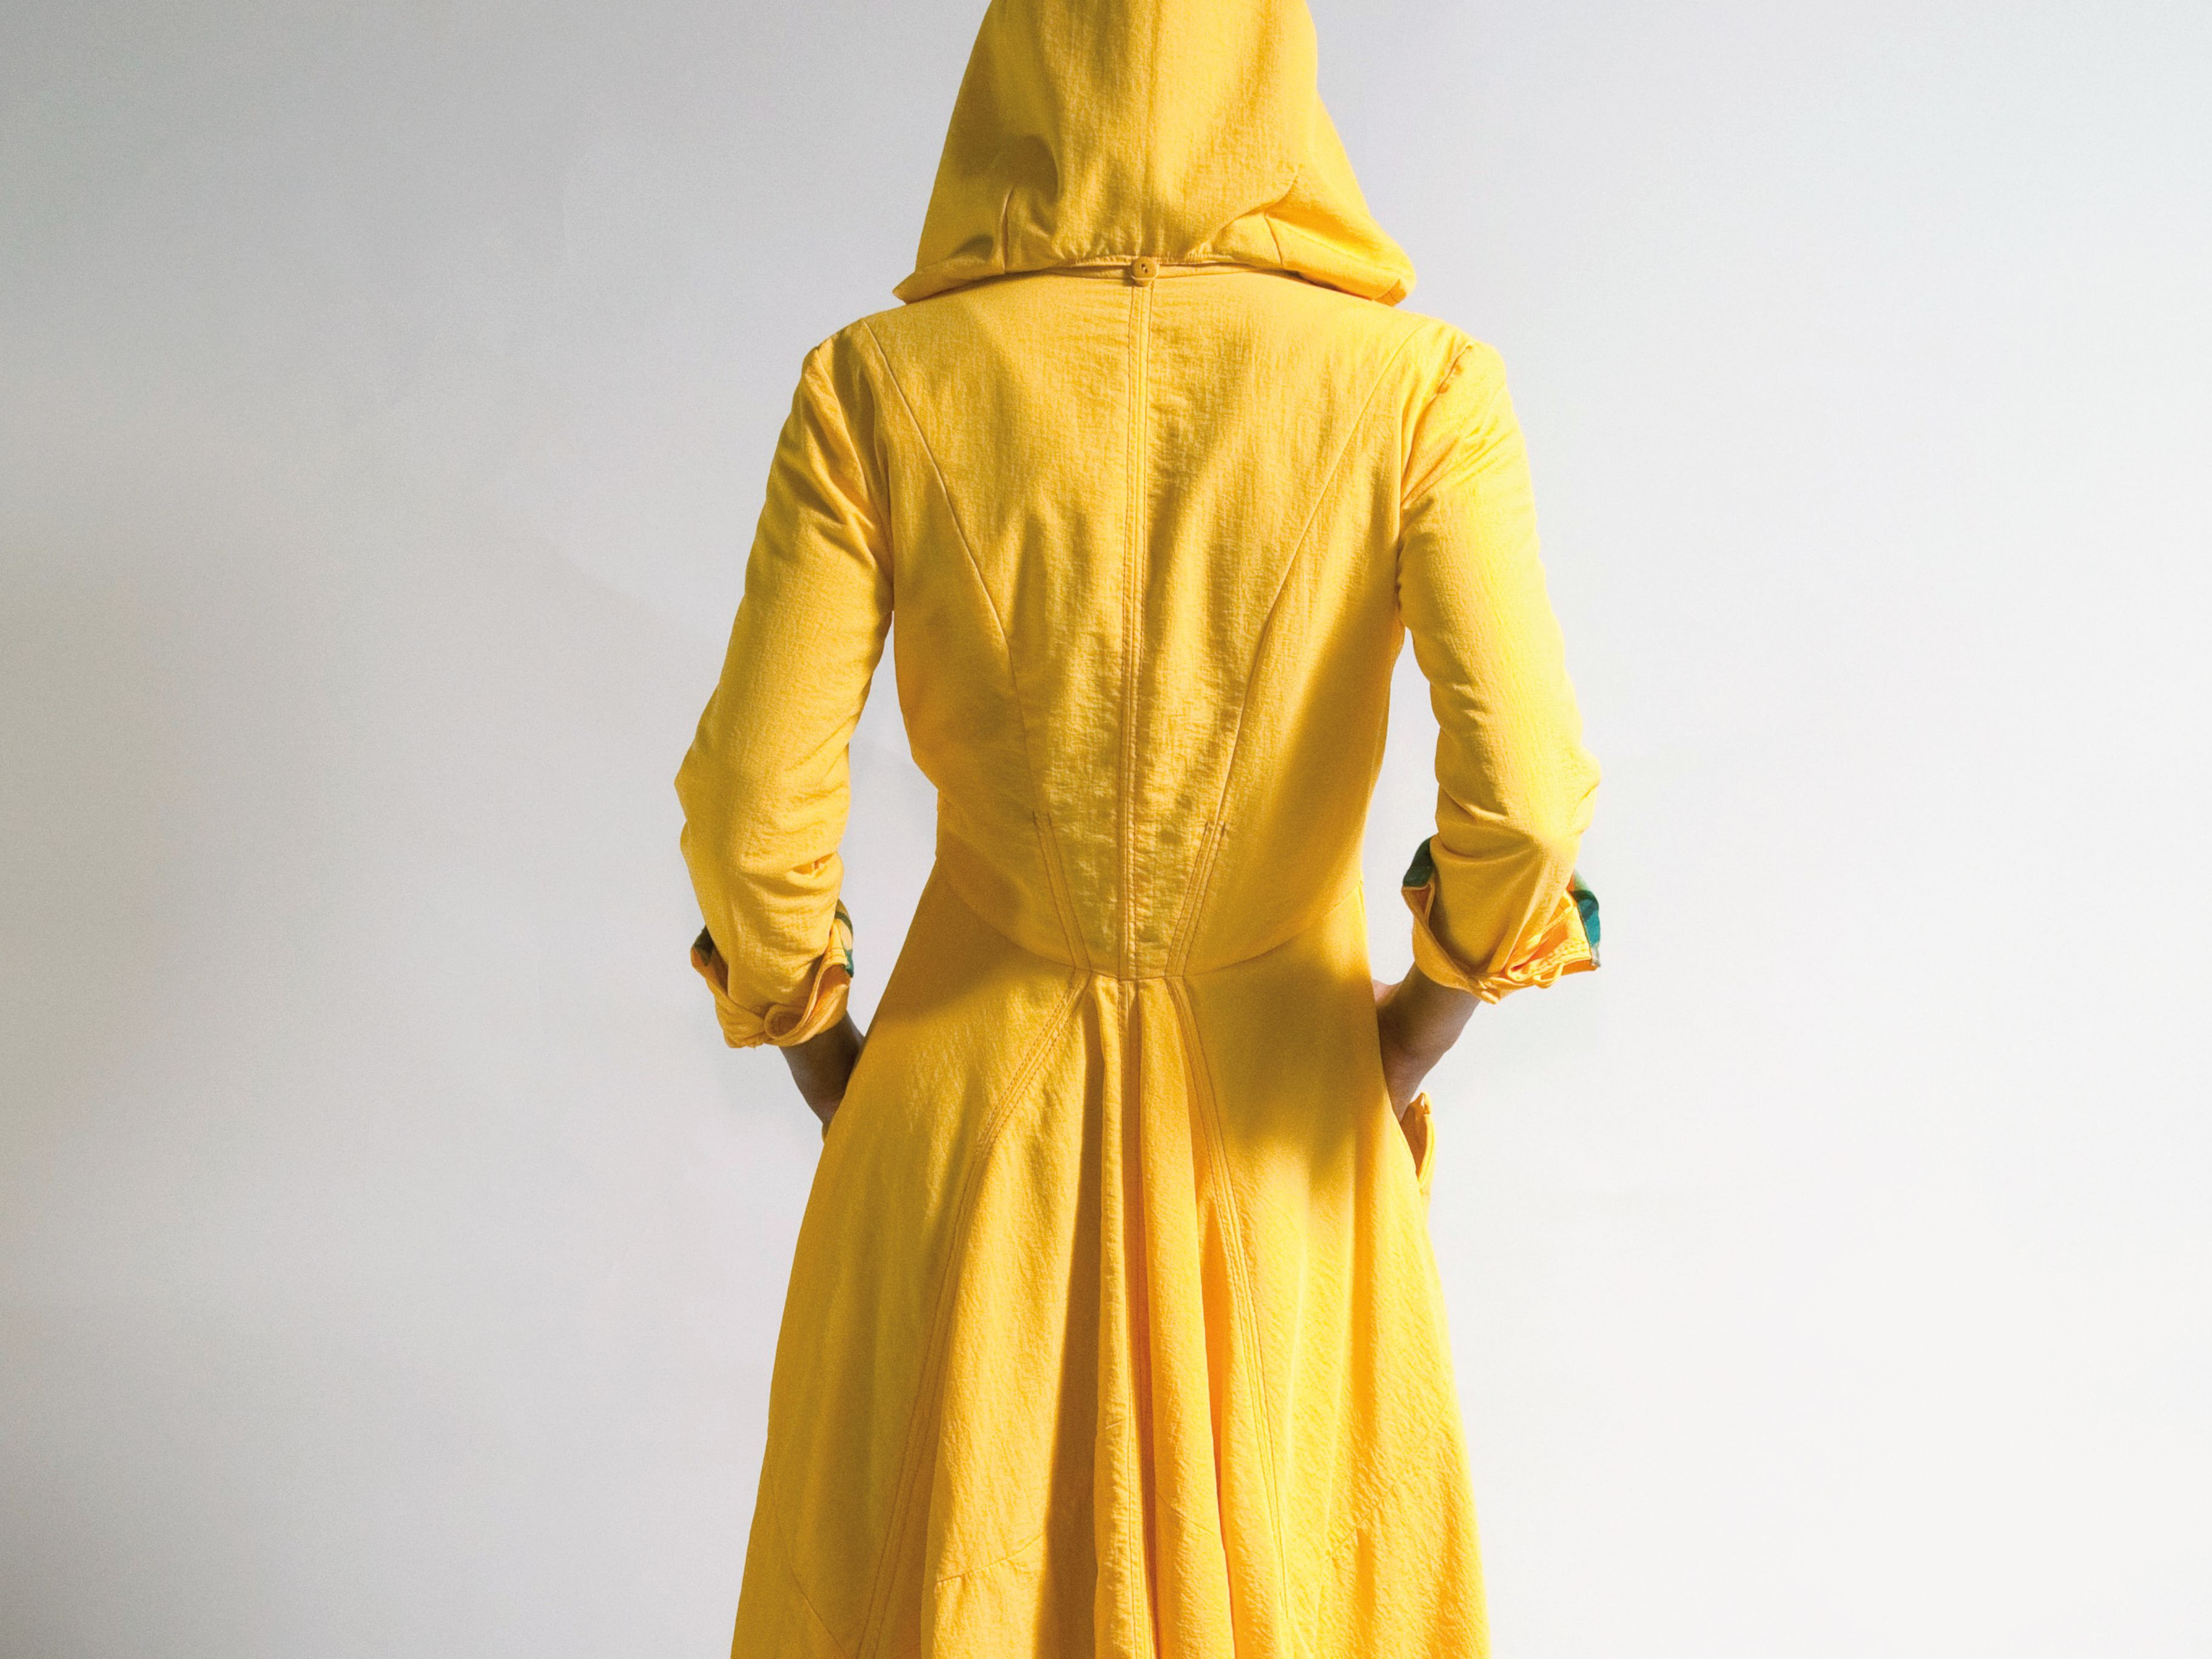 1117 trophy case raincoat txauqo